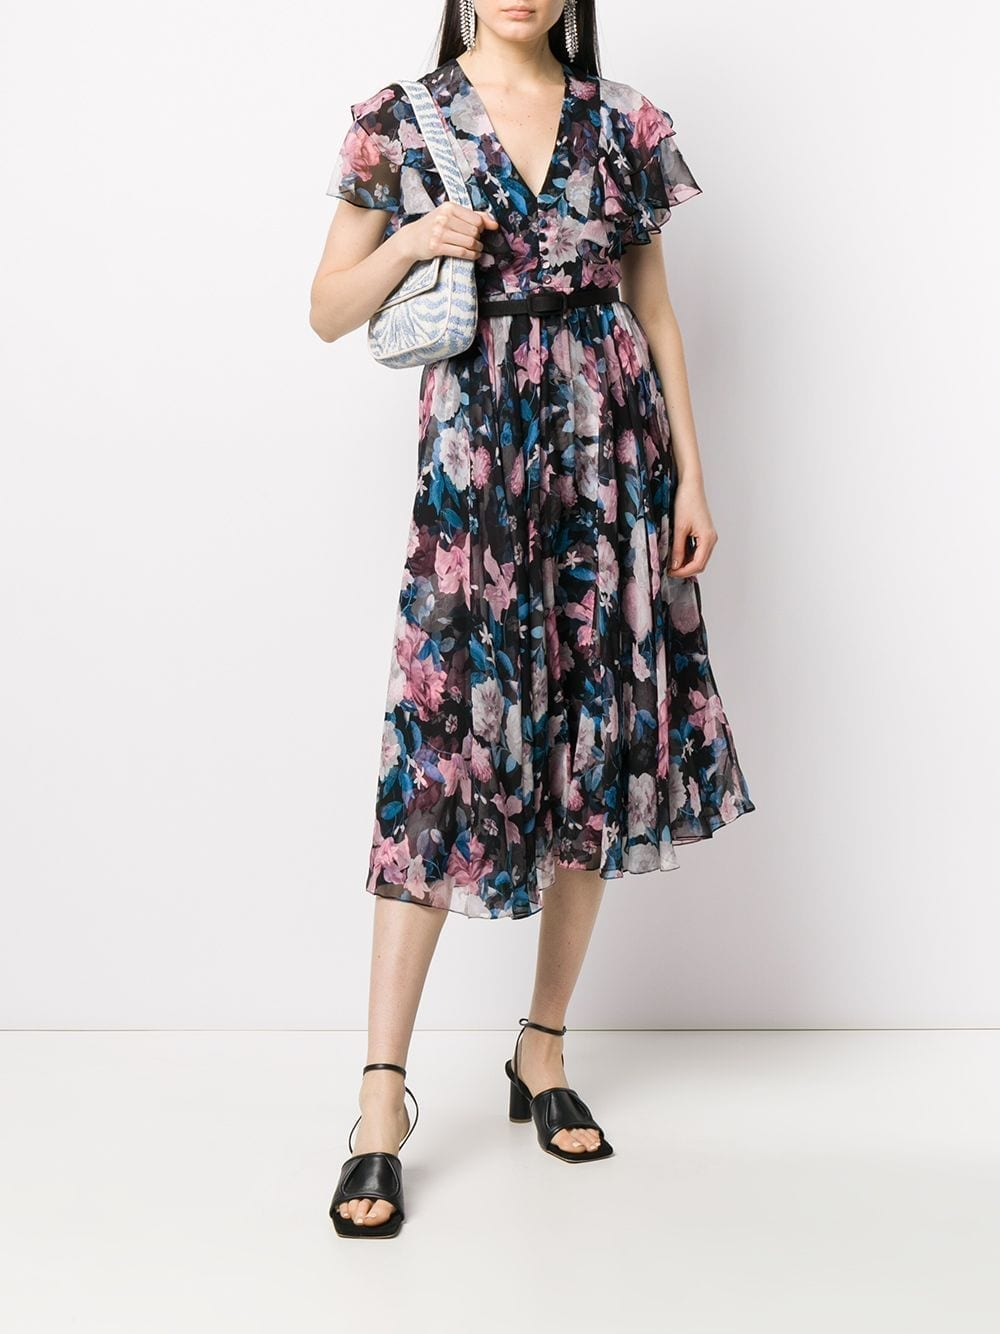 ERDEM Floral Print Flared Dress